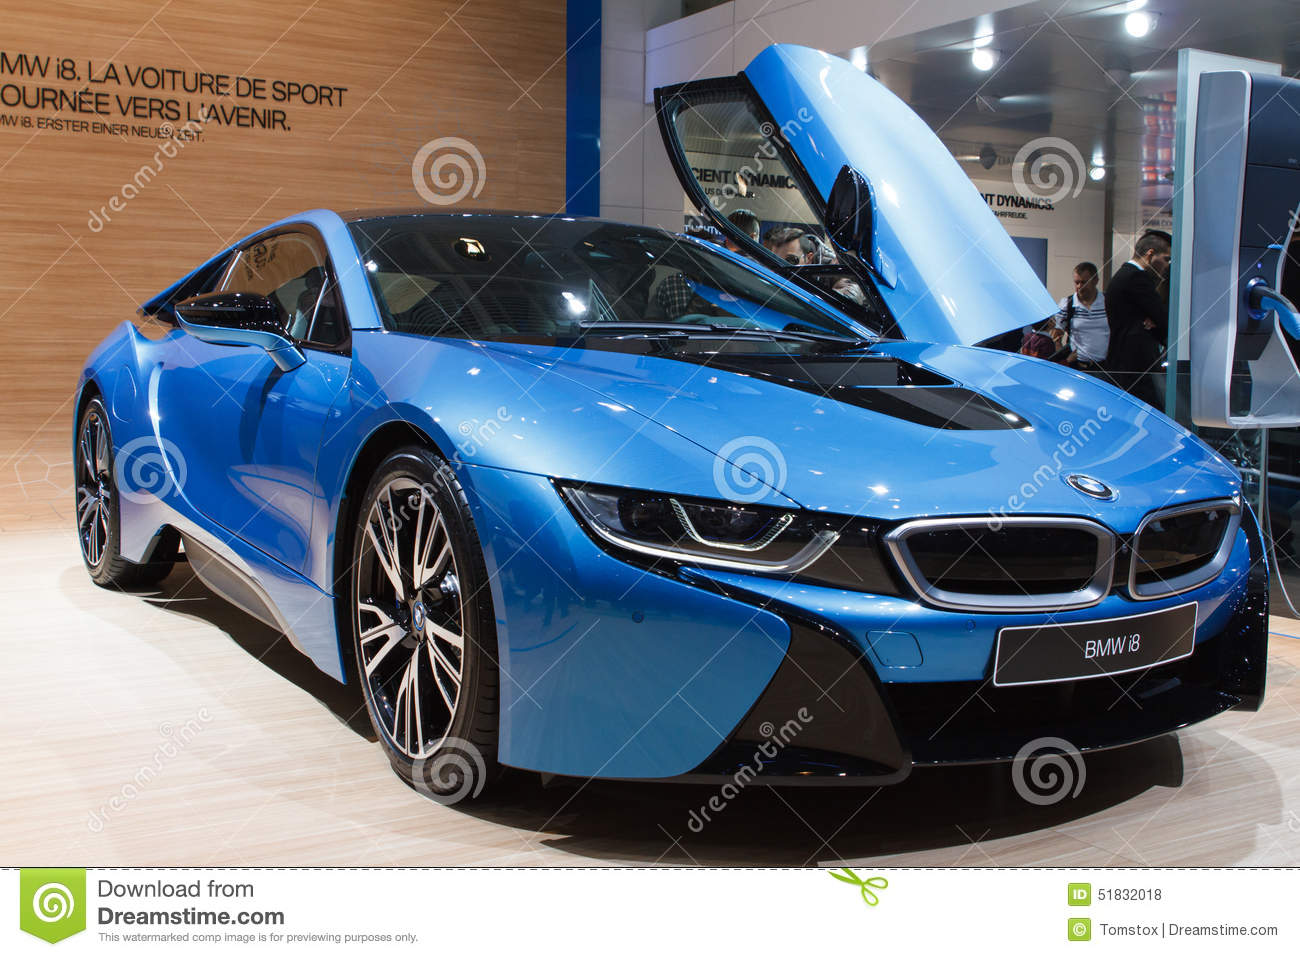 salon de l 39 automobile hybride bleu de bmw i8 gen ve 2015 photo stock ditorial image du sport. Black Bedroom Furniture Sets. Home Design Ideas